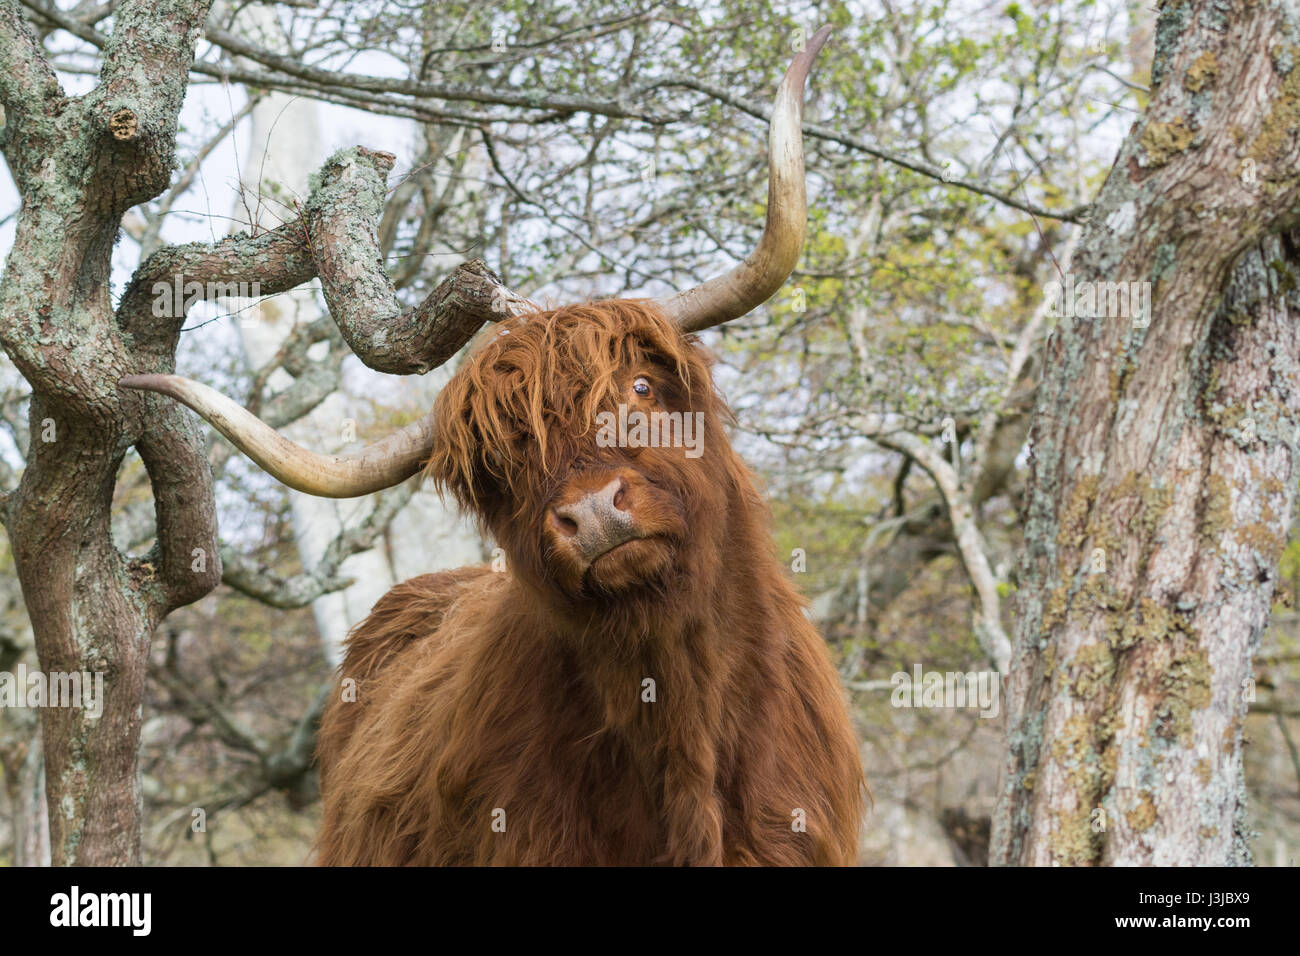 Highland cow funny rayer Photo Stock